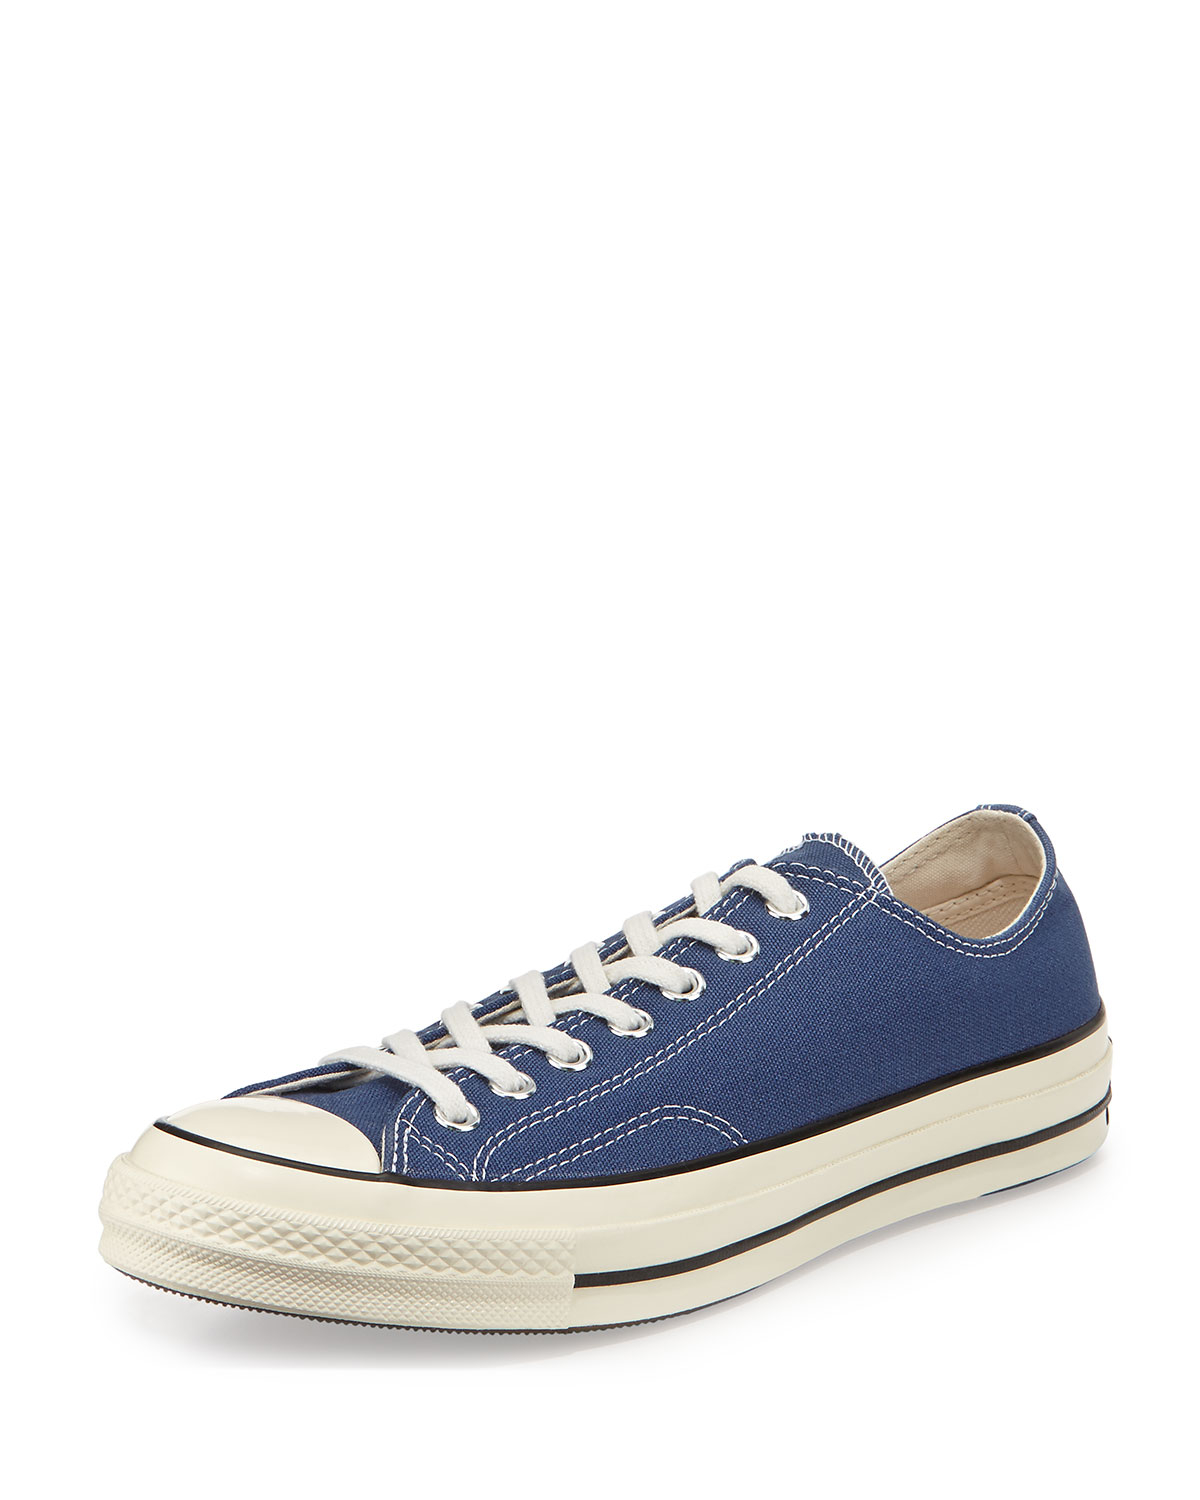 converse all star chuck 39 70 low top sneaker in blue for. Black Bedroom Furniture Sets. Home Design Ideas